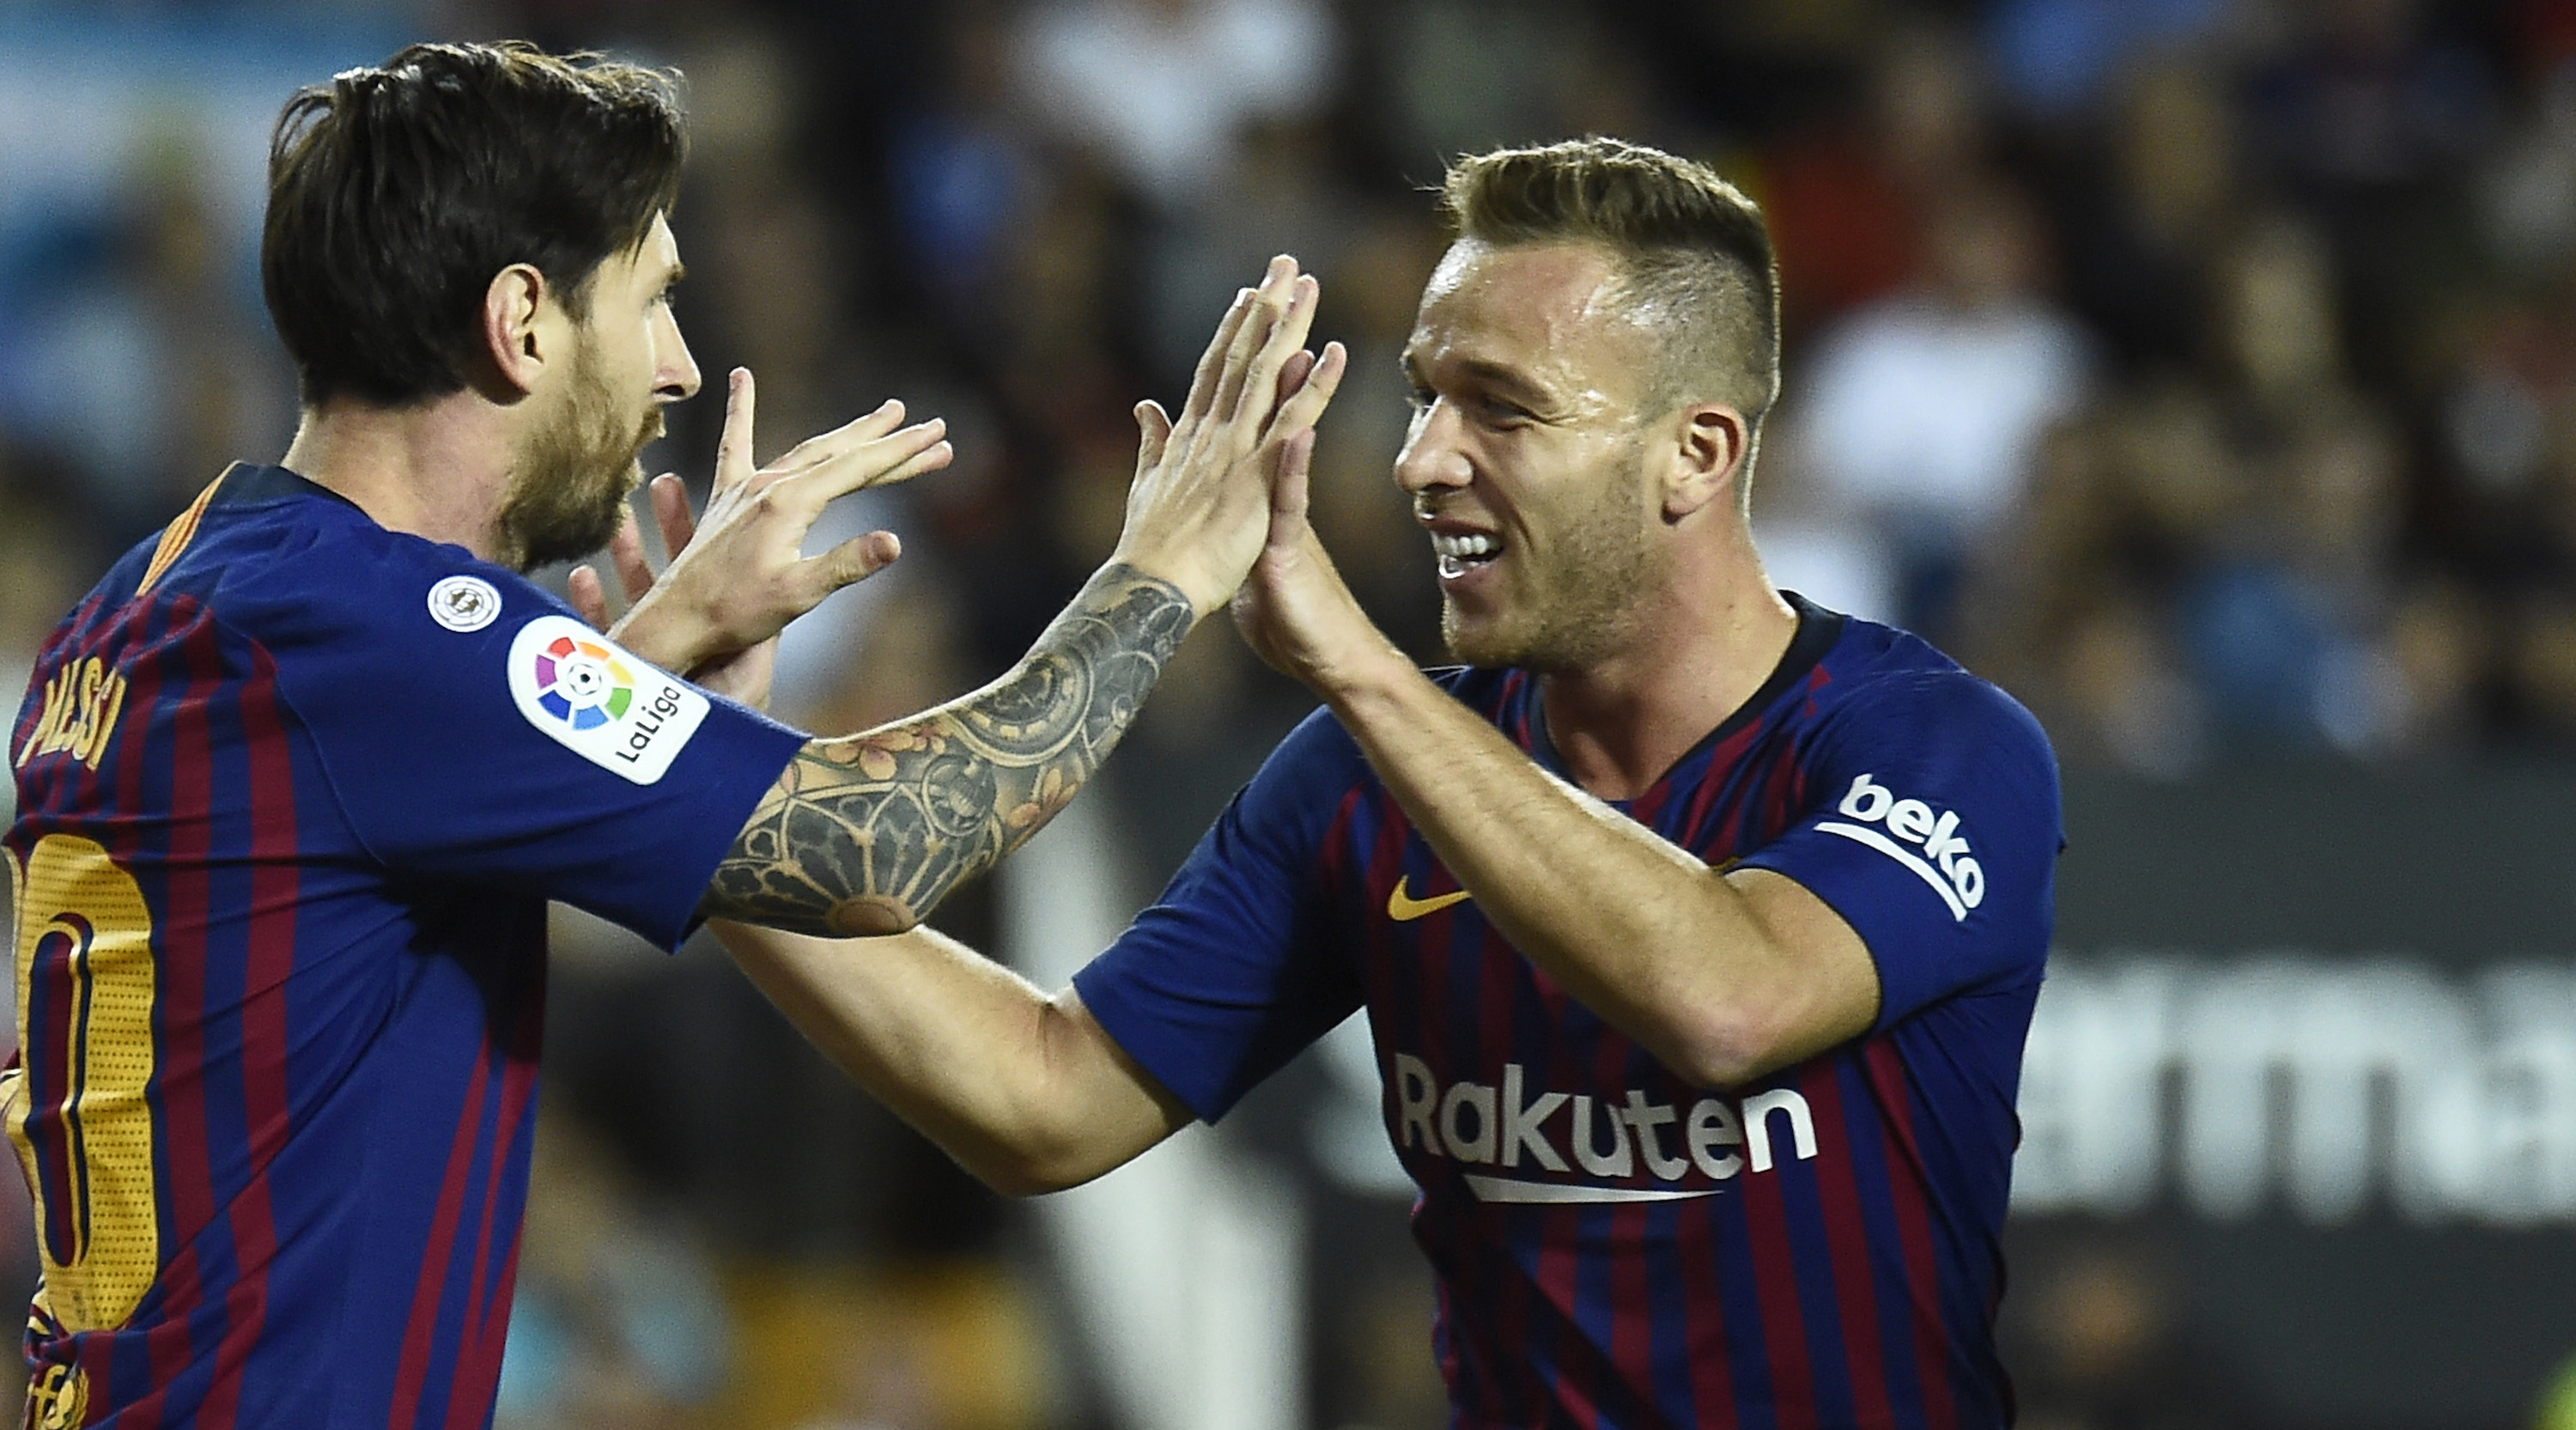 Barcelona's Argentinian forward Lionel Messi celebrates a goal with Barcelona's Brazilian midfielder Arthur during the Spanish league football match between Valencia CF and FC Barcelona at the Mestalla stadium in Valencia on October 7, 2018. (Photo by JOSE JORDAN / AFP) (Photo credit should read JOSE JORDAN/AFP/Getty Images)